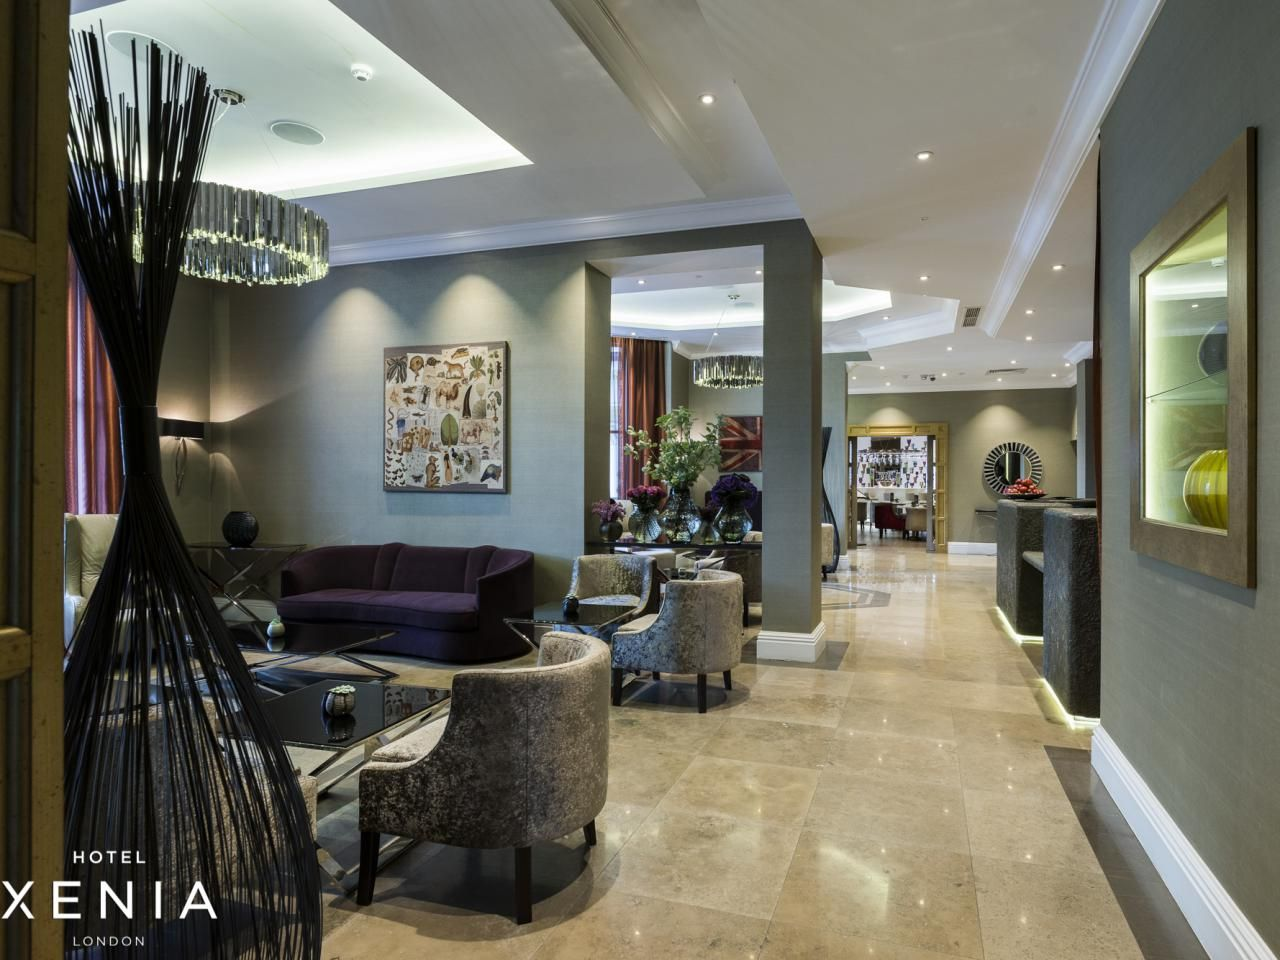 Gallery London Hotels Xenia Hotel London